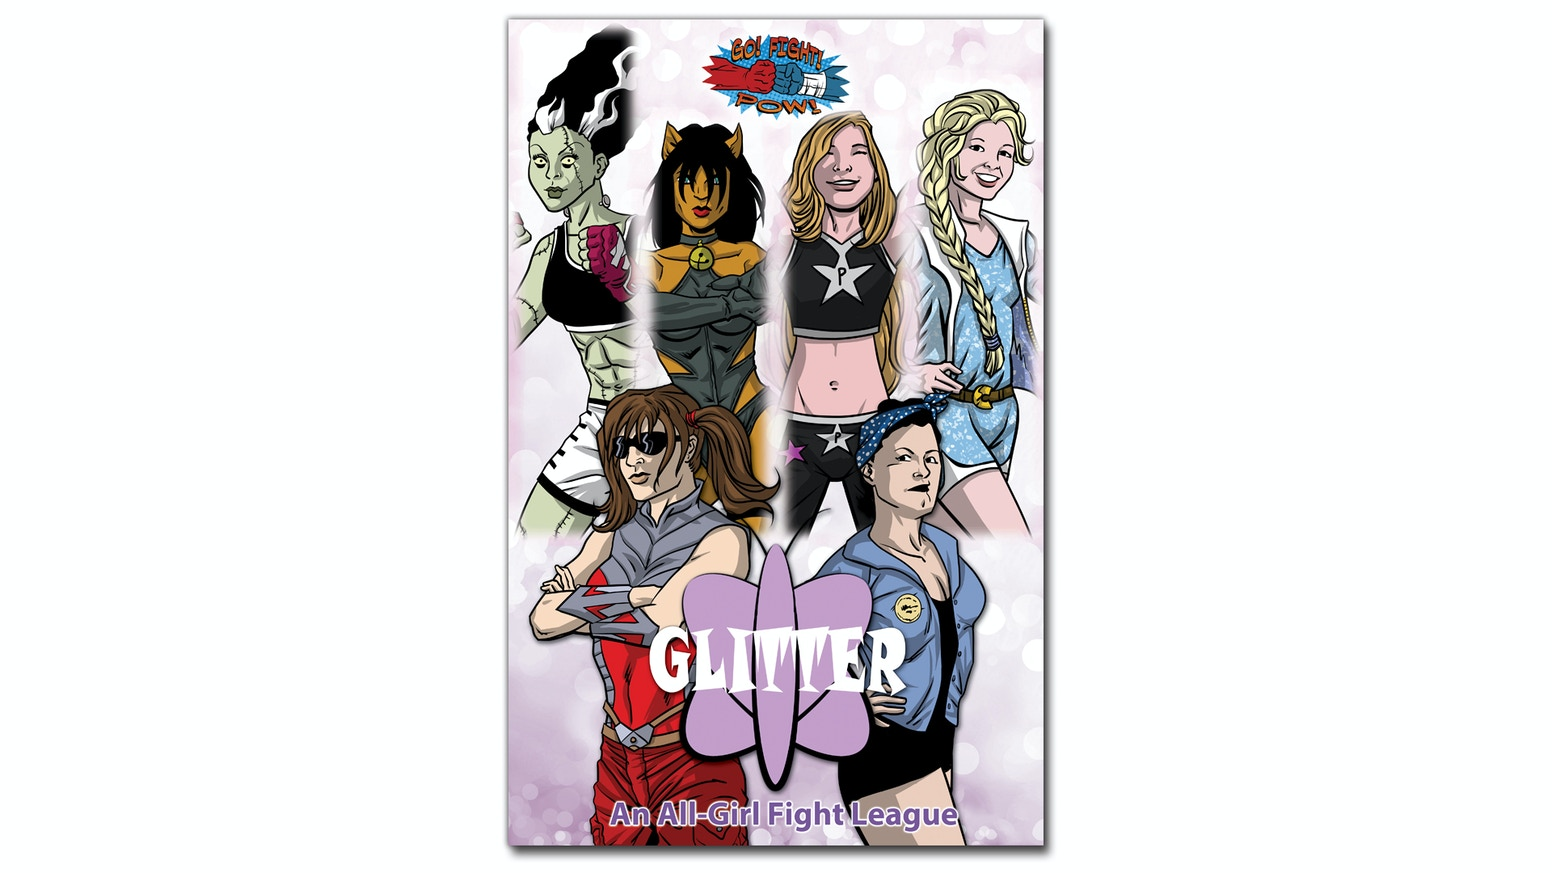 Go.Fight.Pow!,the creators of the Intergalactic Fight Club bring you their all-girl fight league, GLITTER! Go on...fight like a girl!